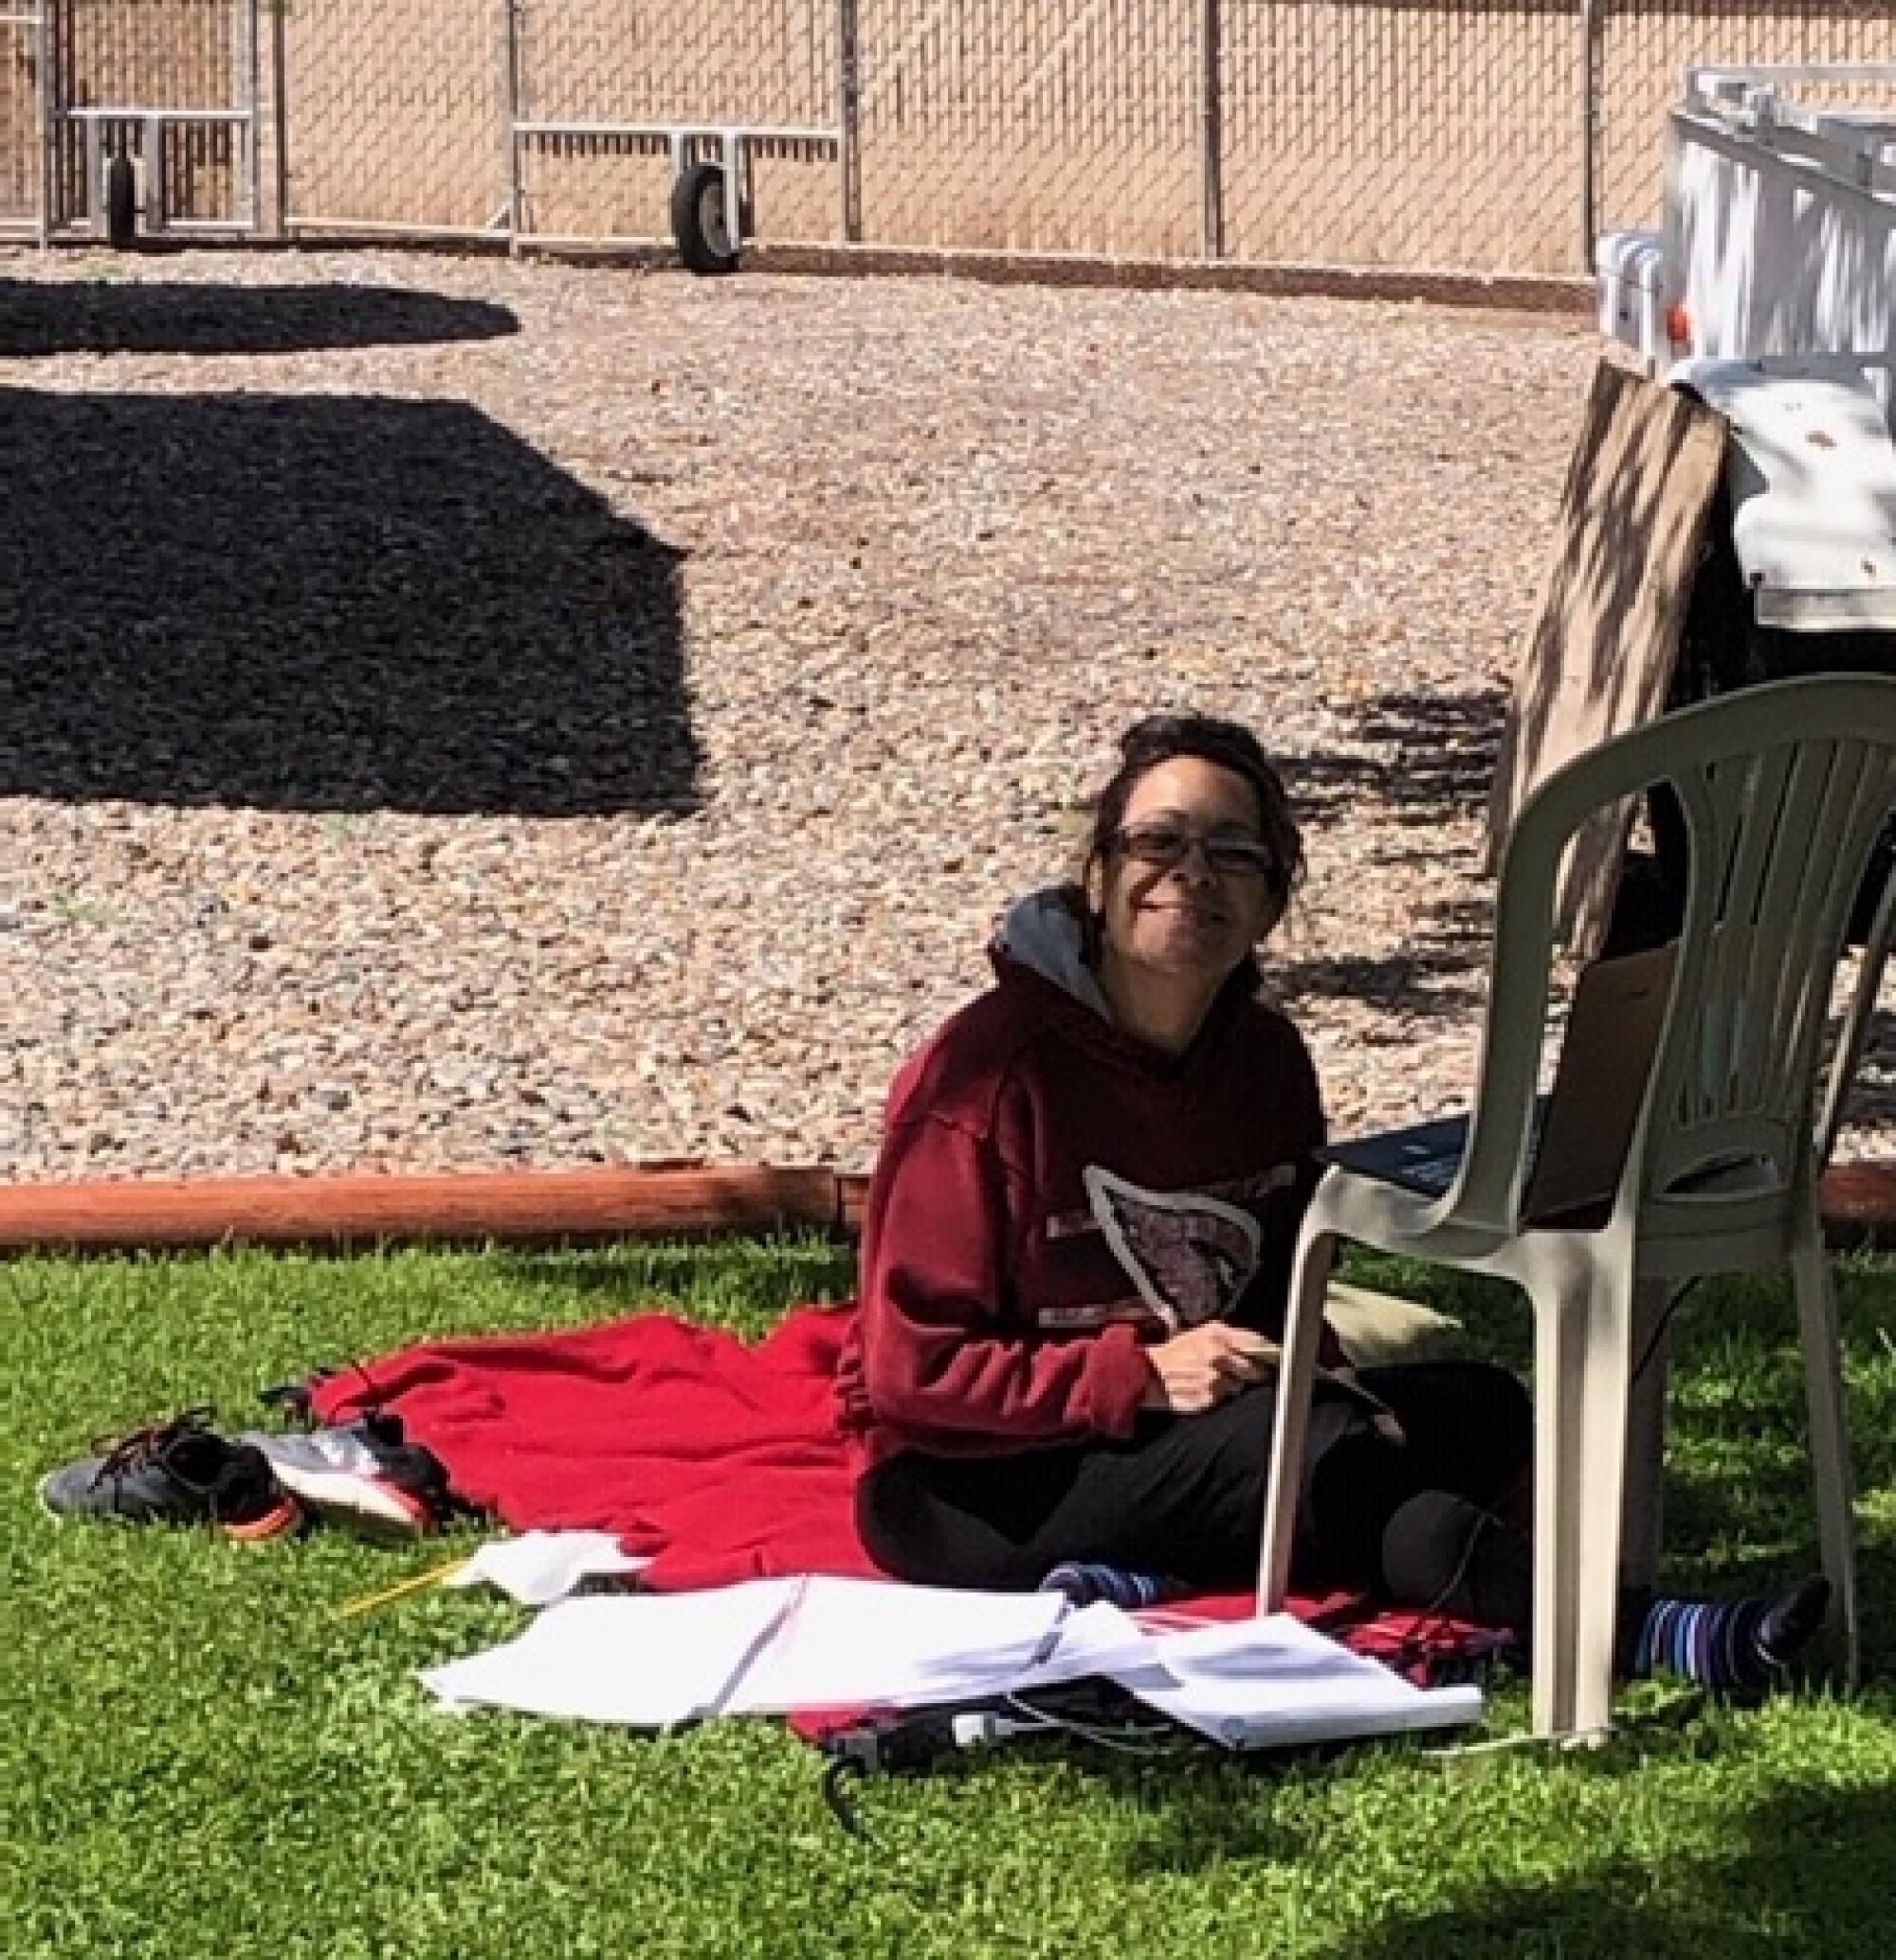 I was getting my much-needed Vitamin D for the day. It's amazing how much you get accomplished when you love where you work. Birds singing was a nice touch. Bird pooping on my papers I could have done without. – Elba C. Lorenz, program coordinator in the